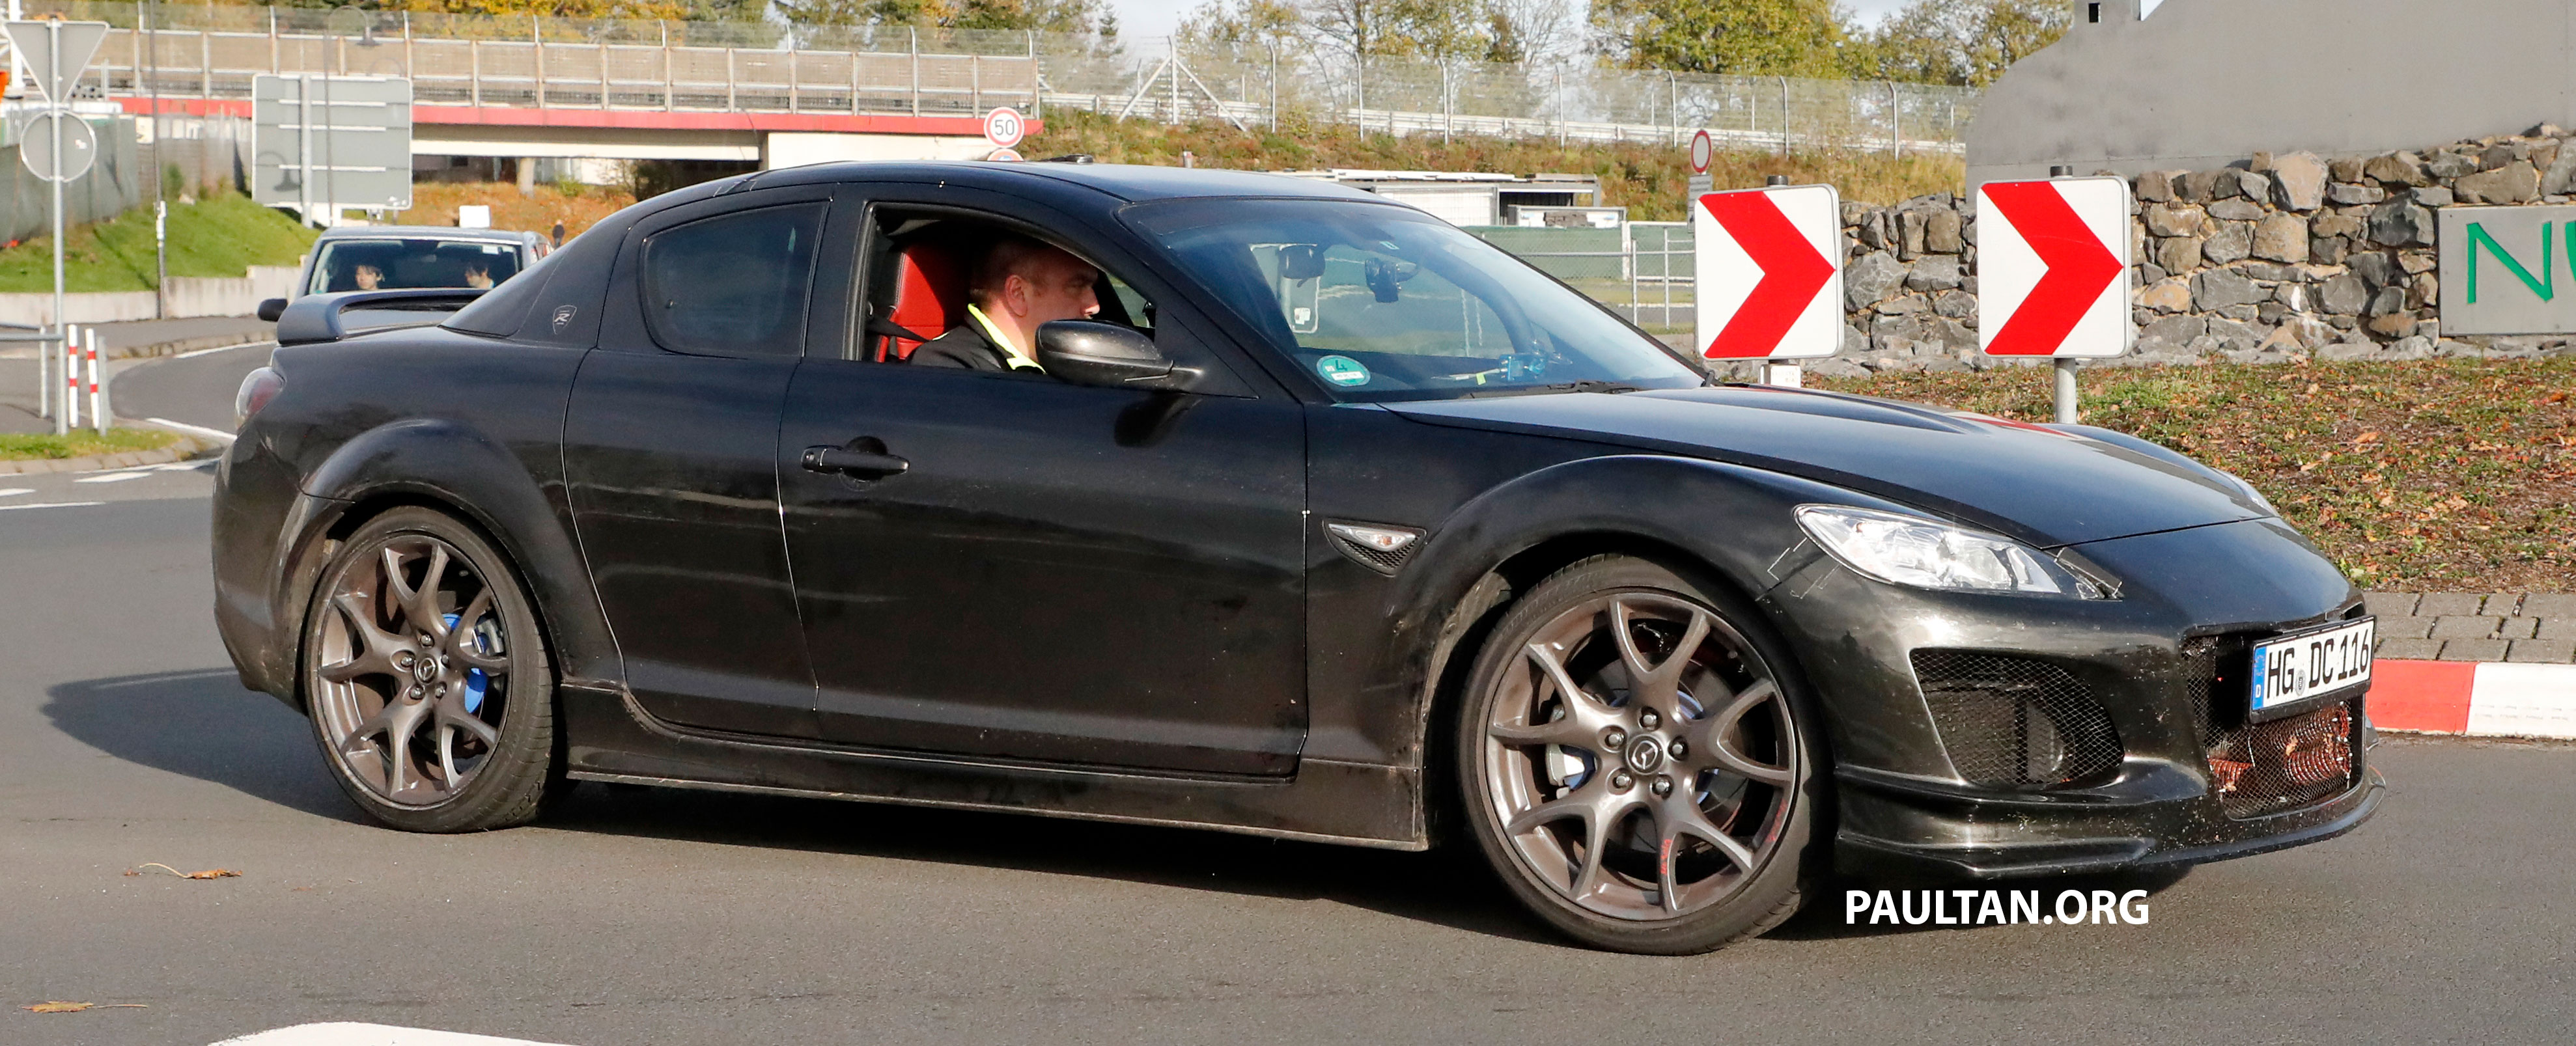 SPYSHOTS Mazda RX 9 seen testing in RX 8 clothes Paul Tan Image